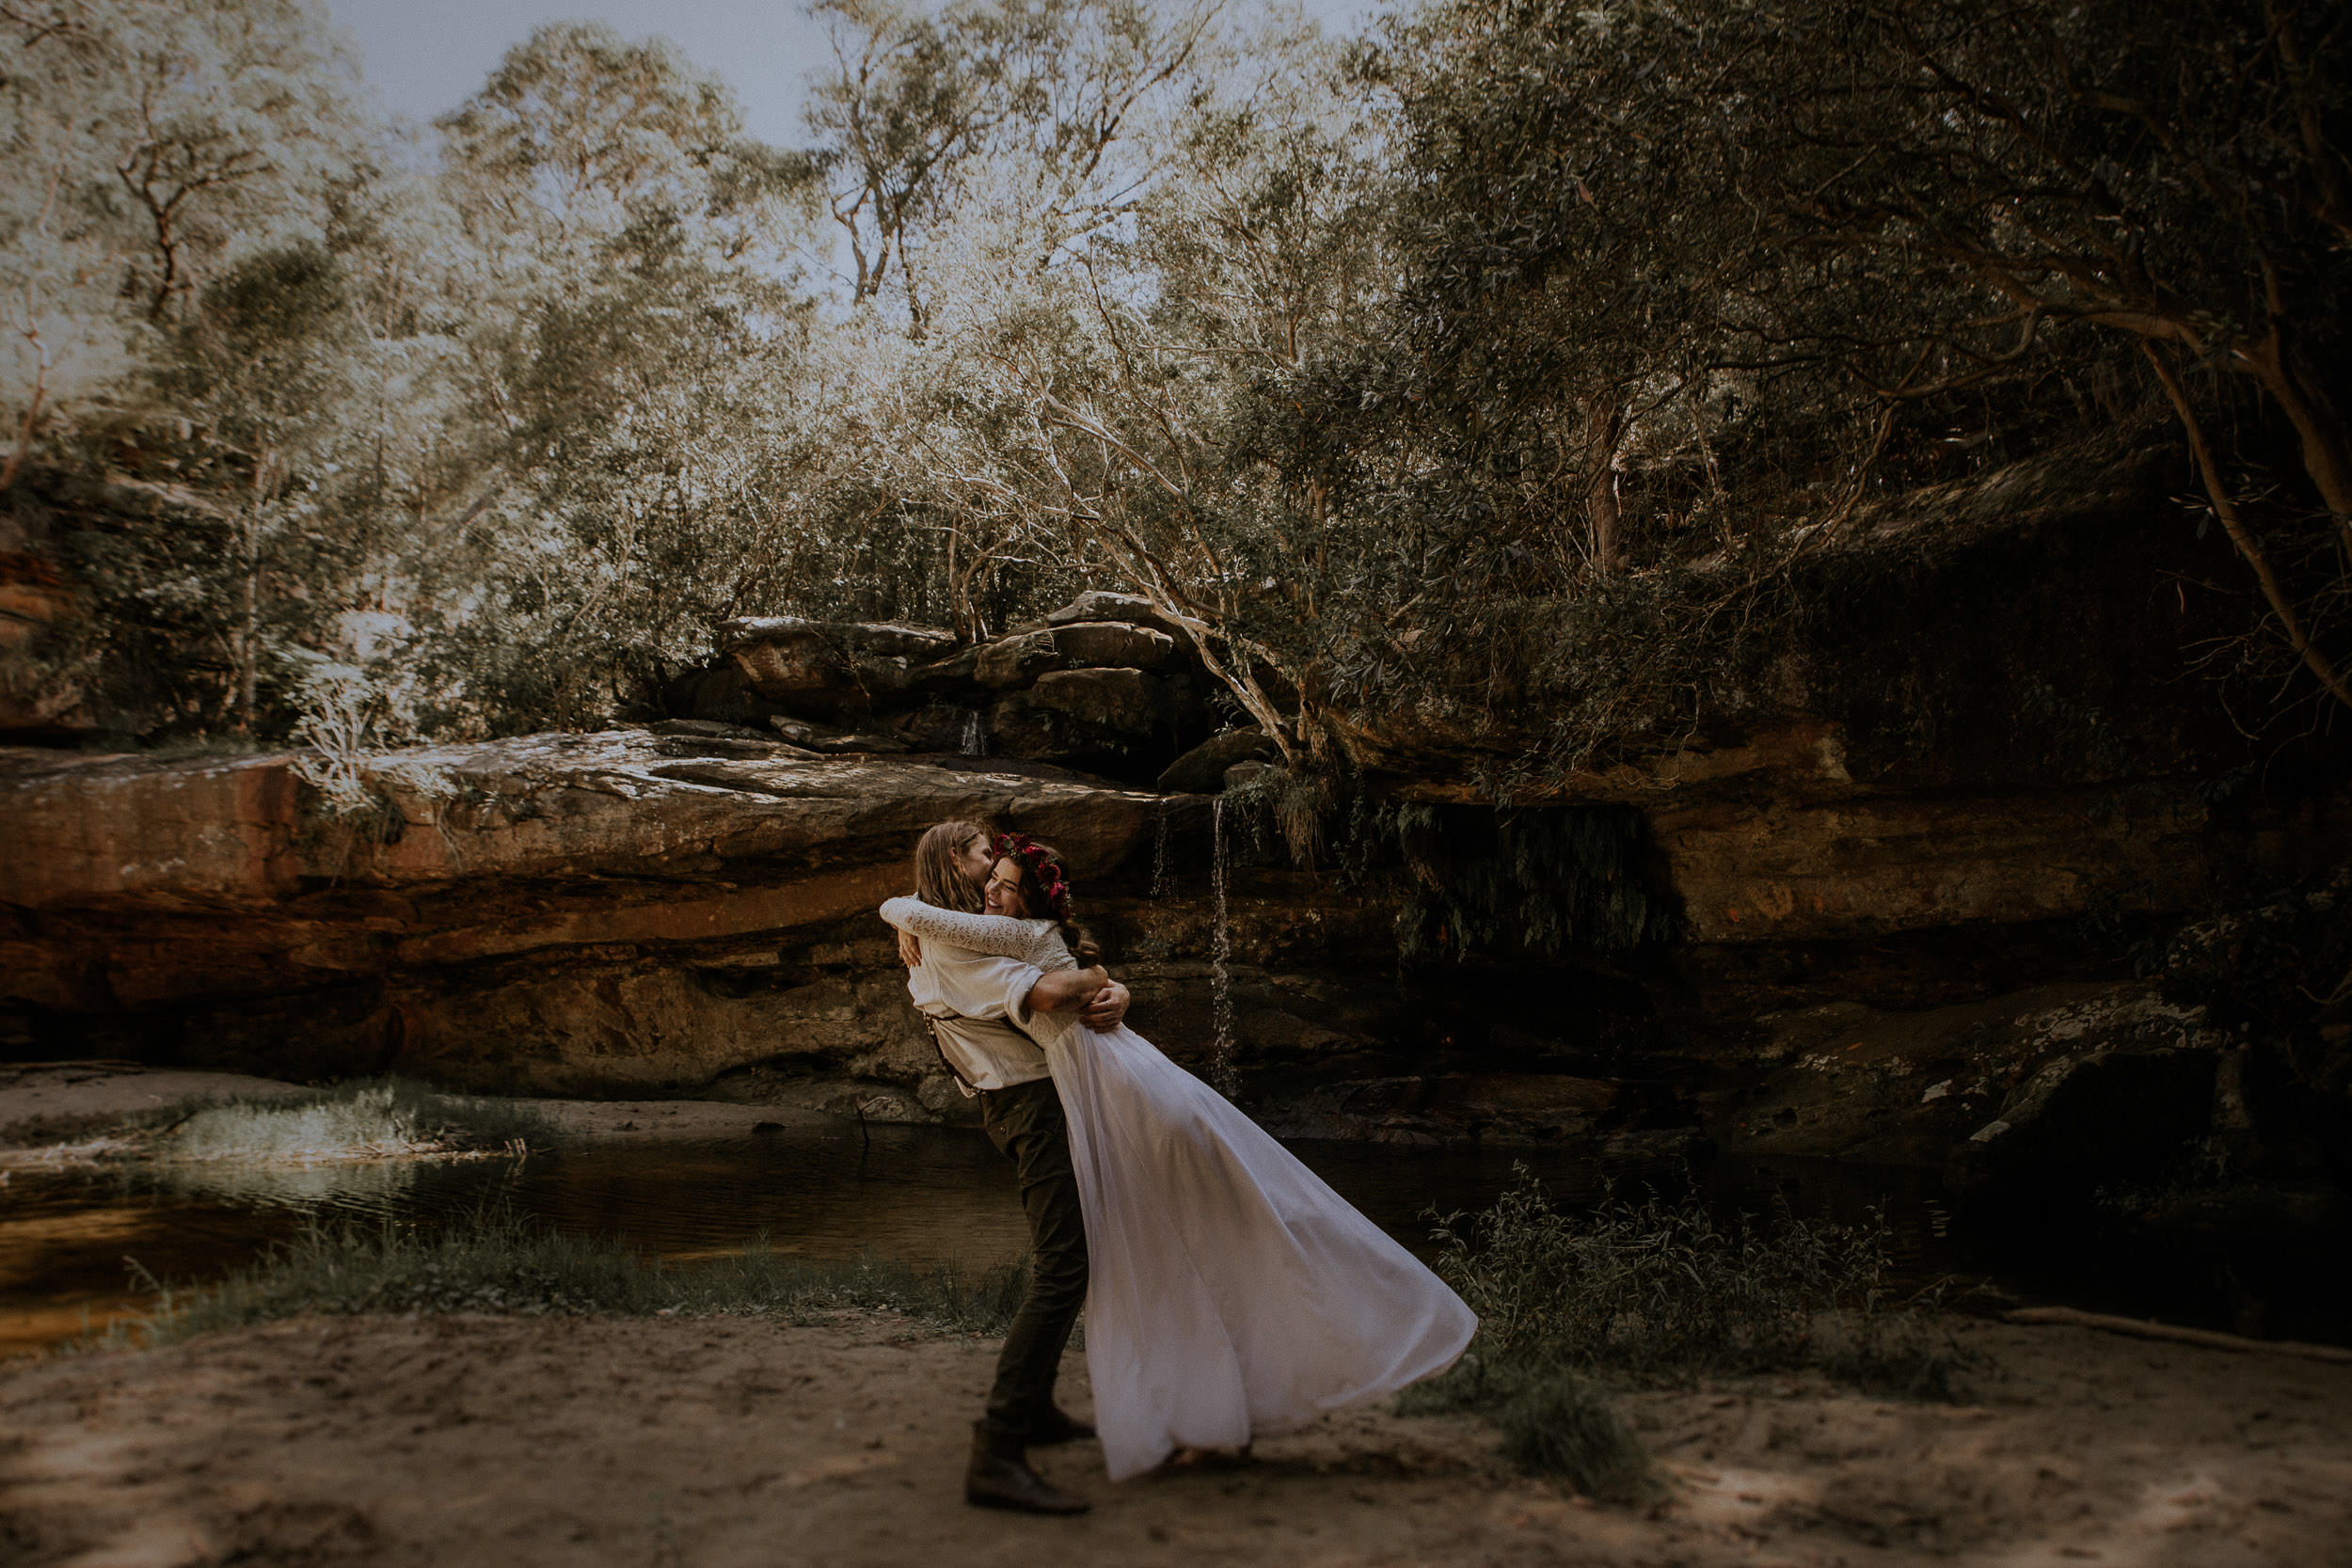 beth & caleb - kings & thieves elopement wedding photography -- submission 142.jpg